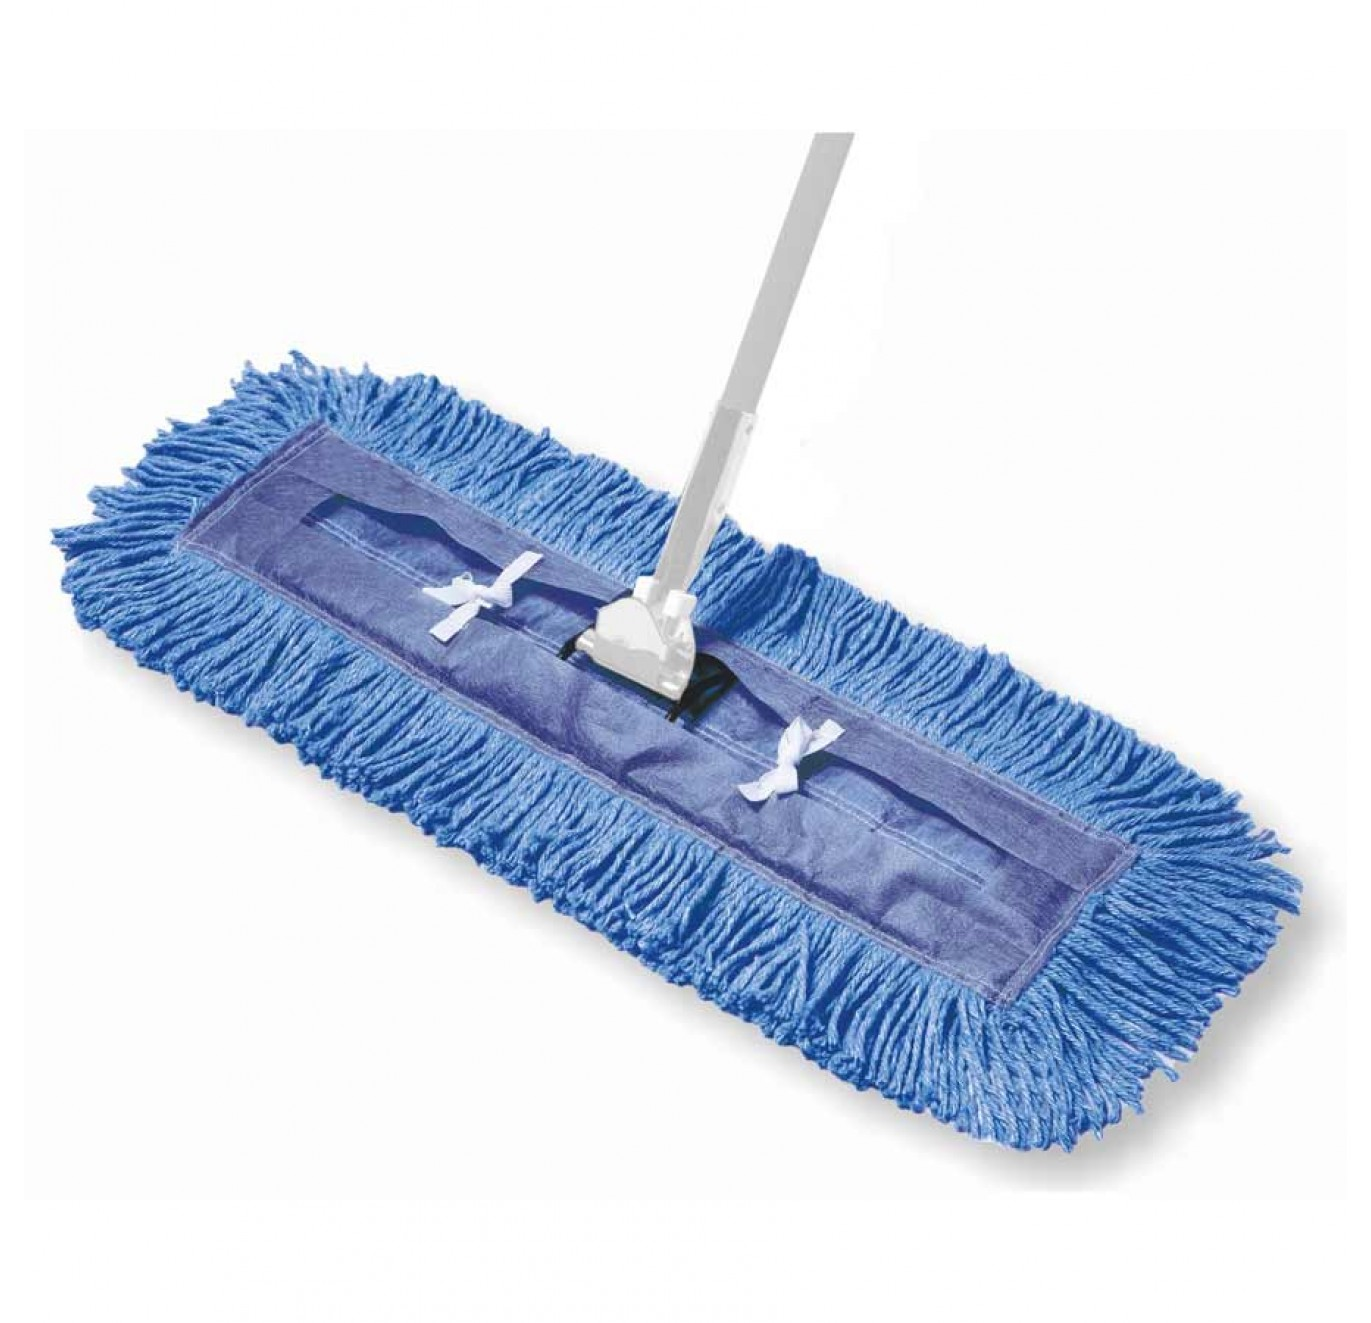 ... client will own a dry mop – use theirs, don't carry one with you